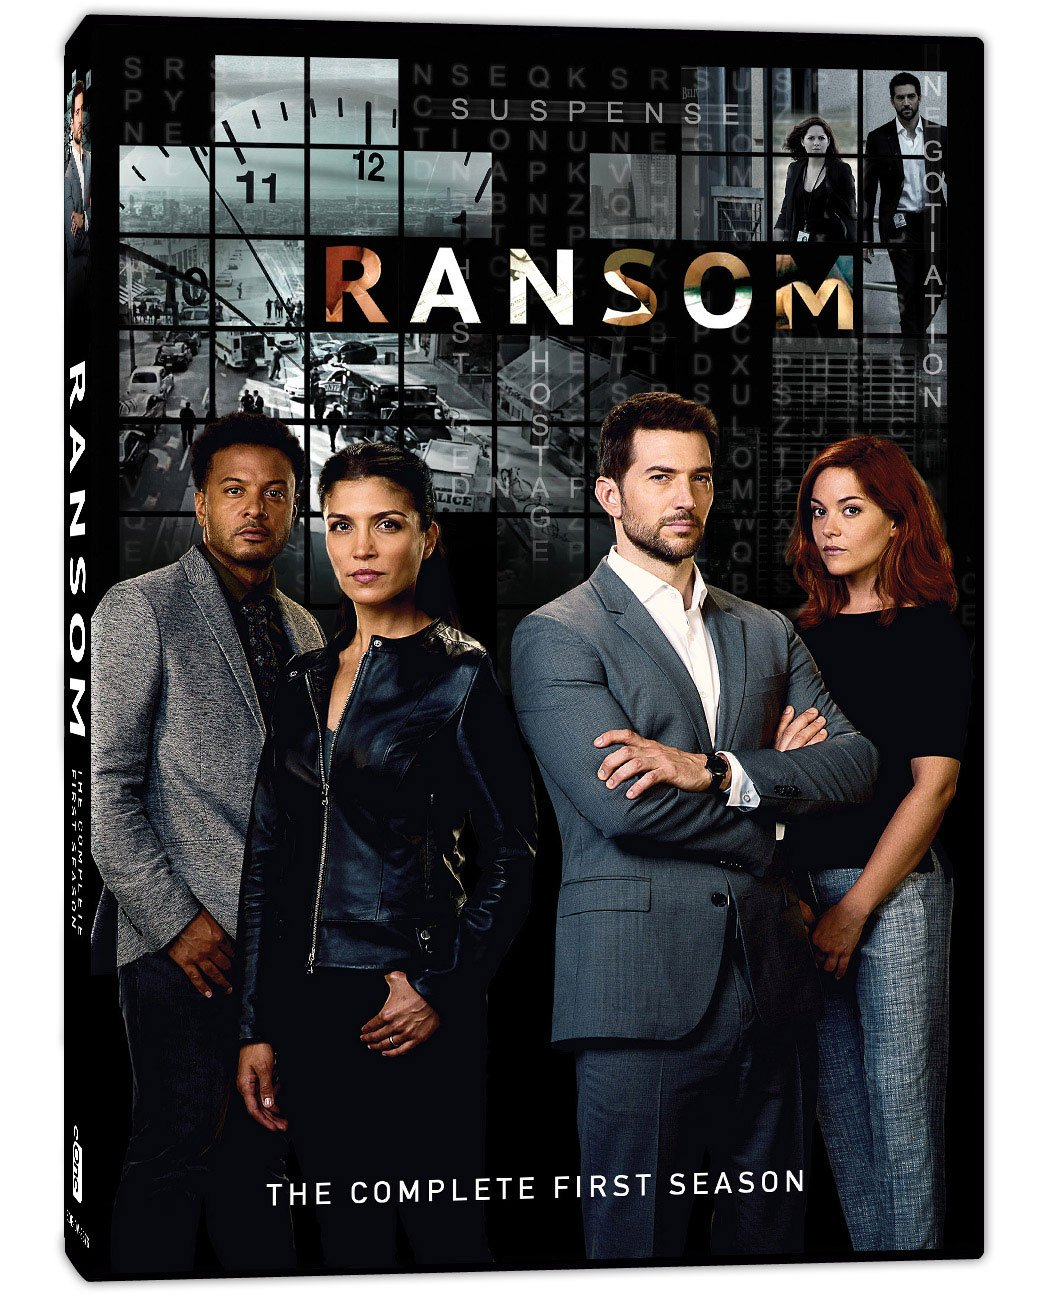 Ransom (2017) - Season 01 by Distribution Solutions